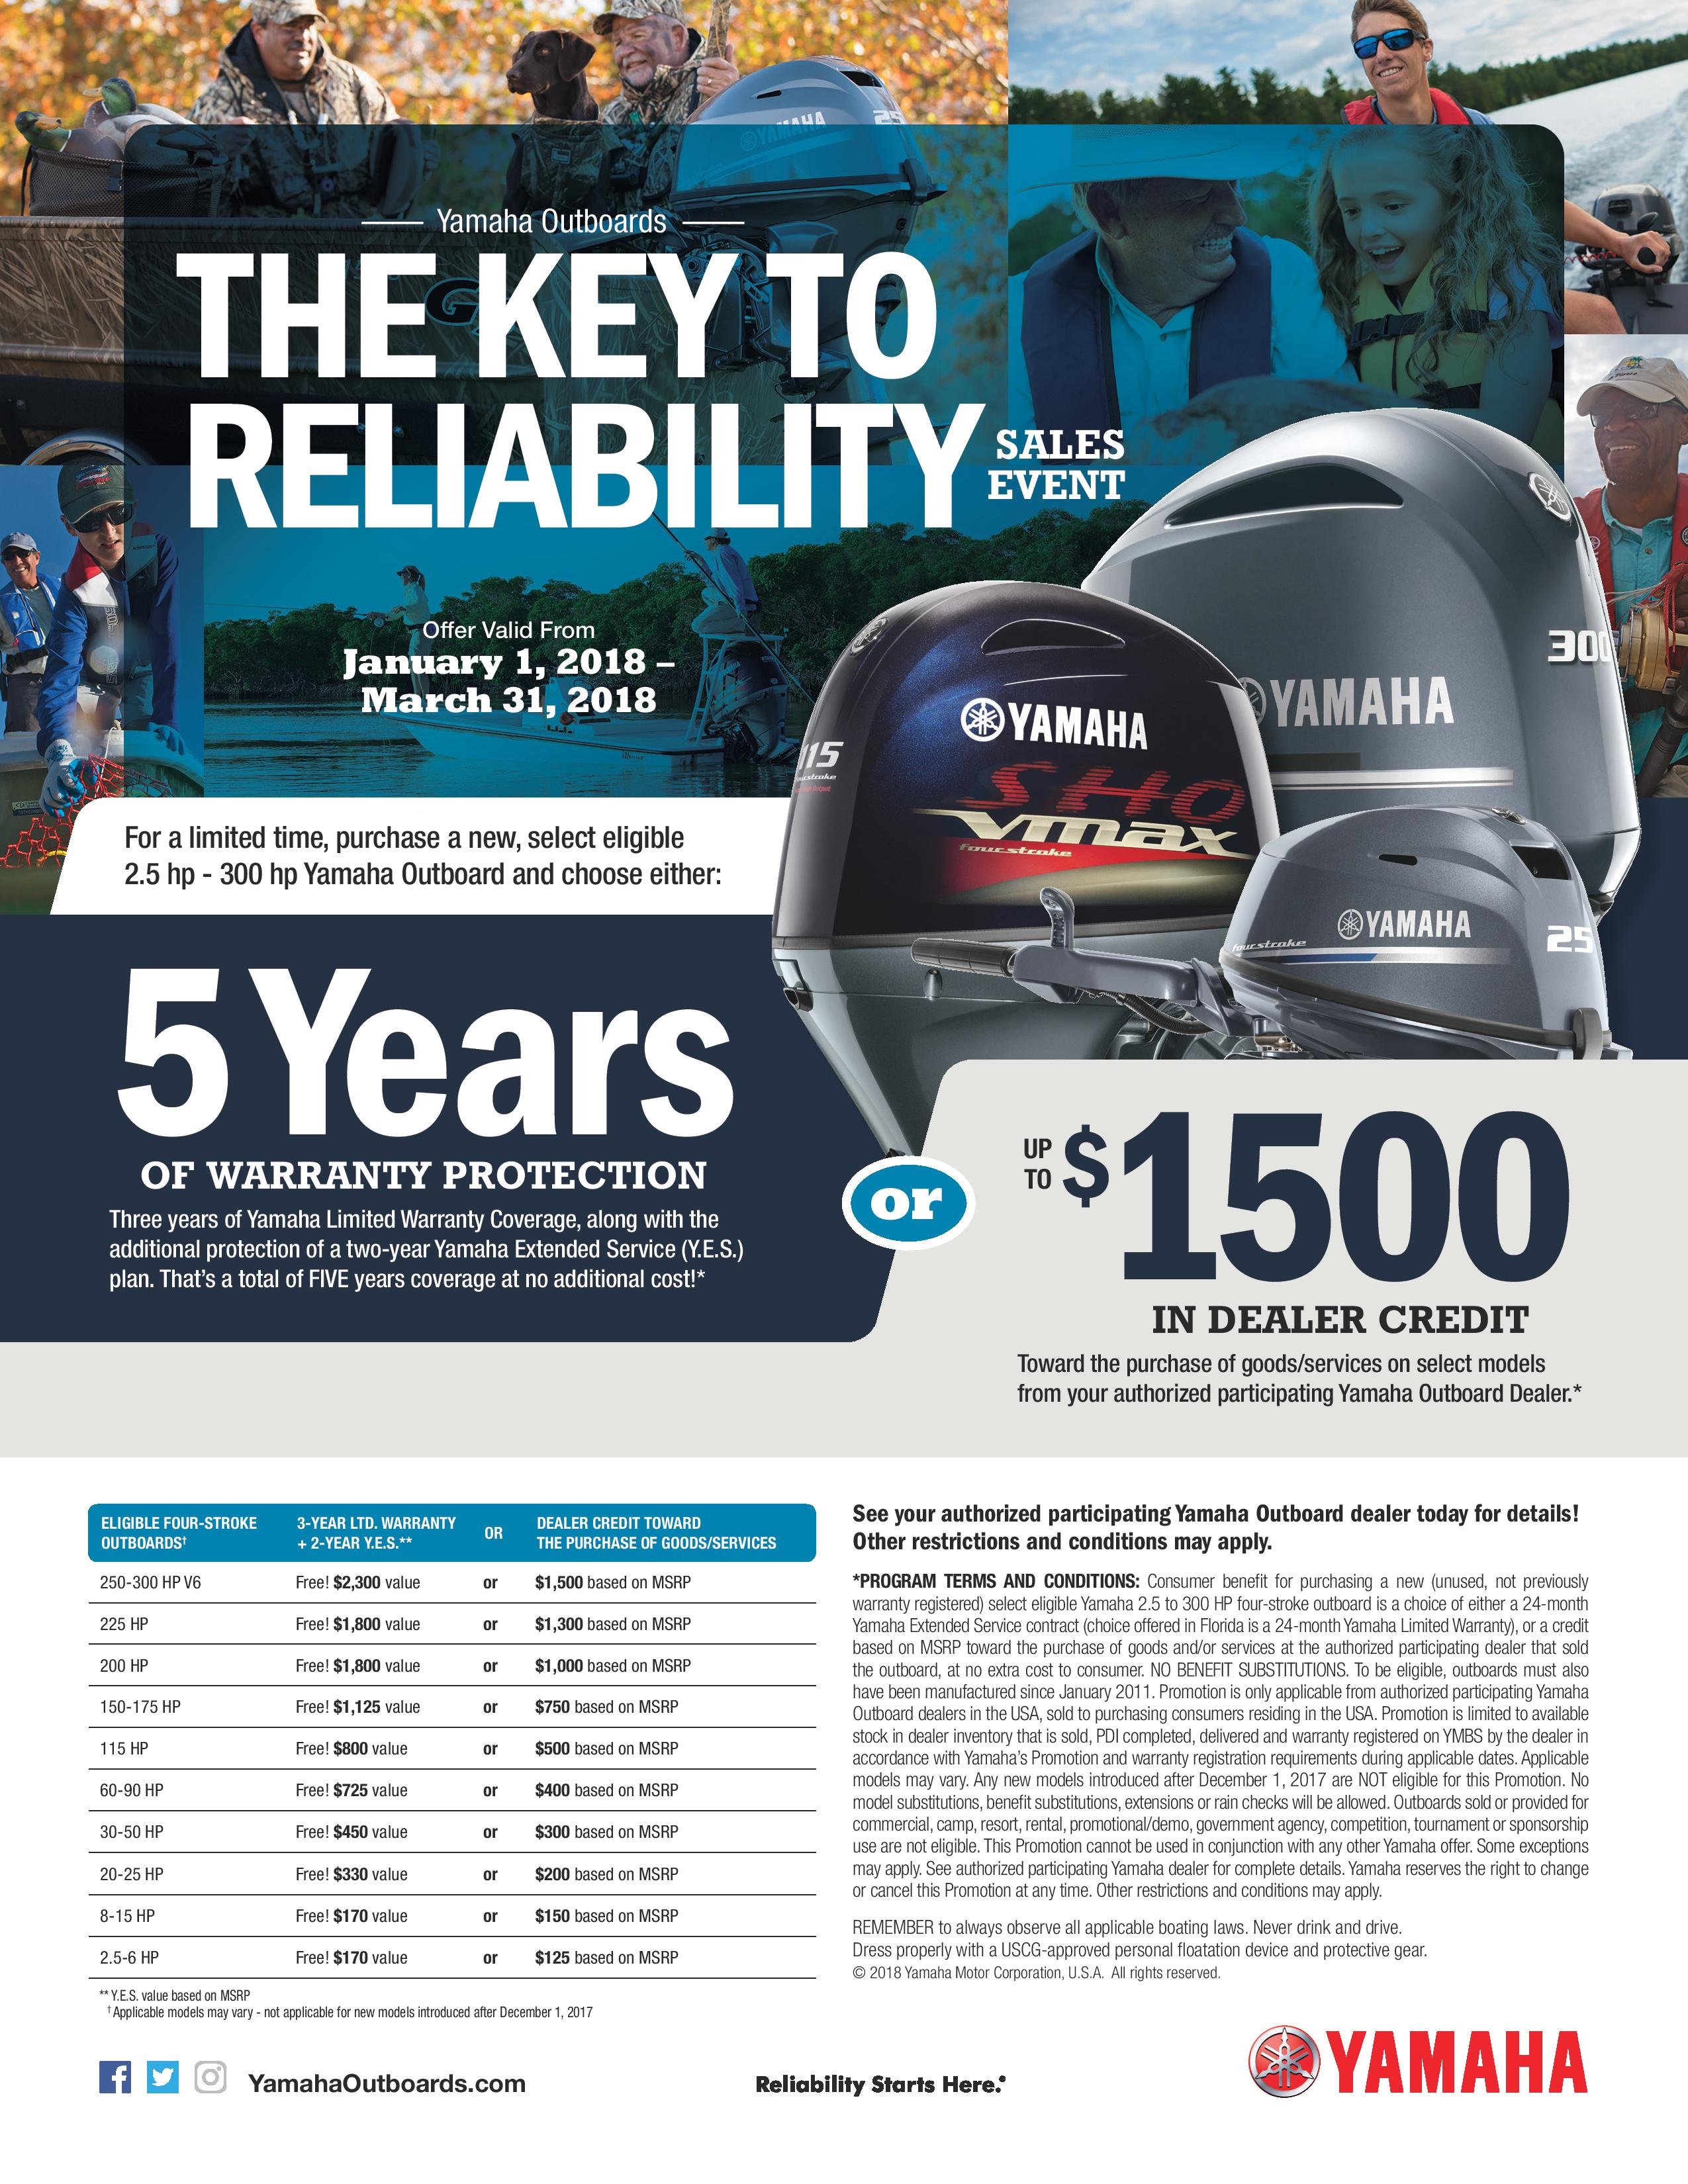 62537the-key-to-reliability-sales-event-print-ad-final-page-001.jpg